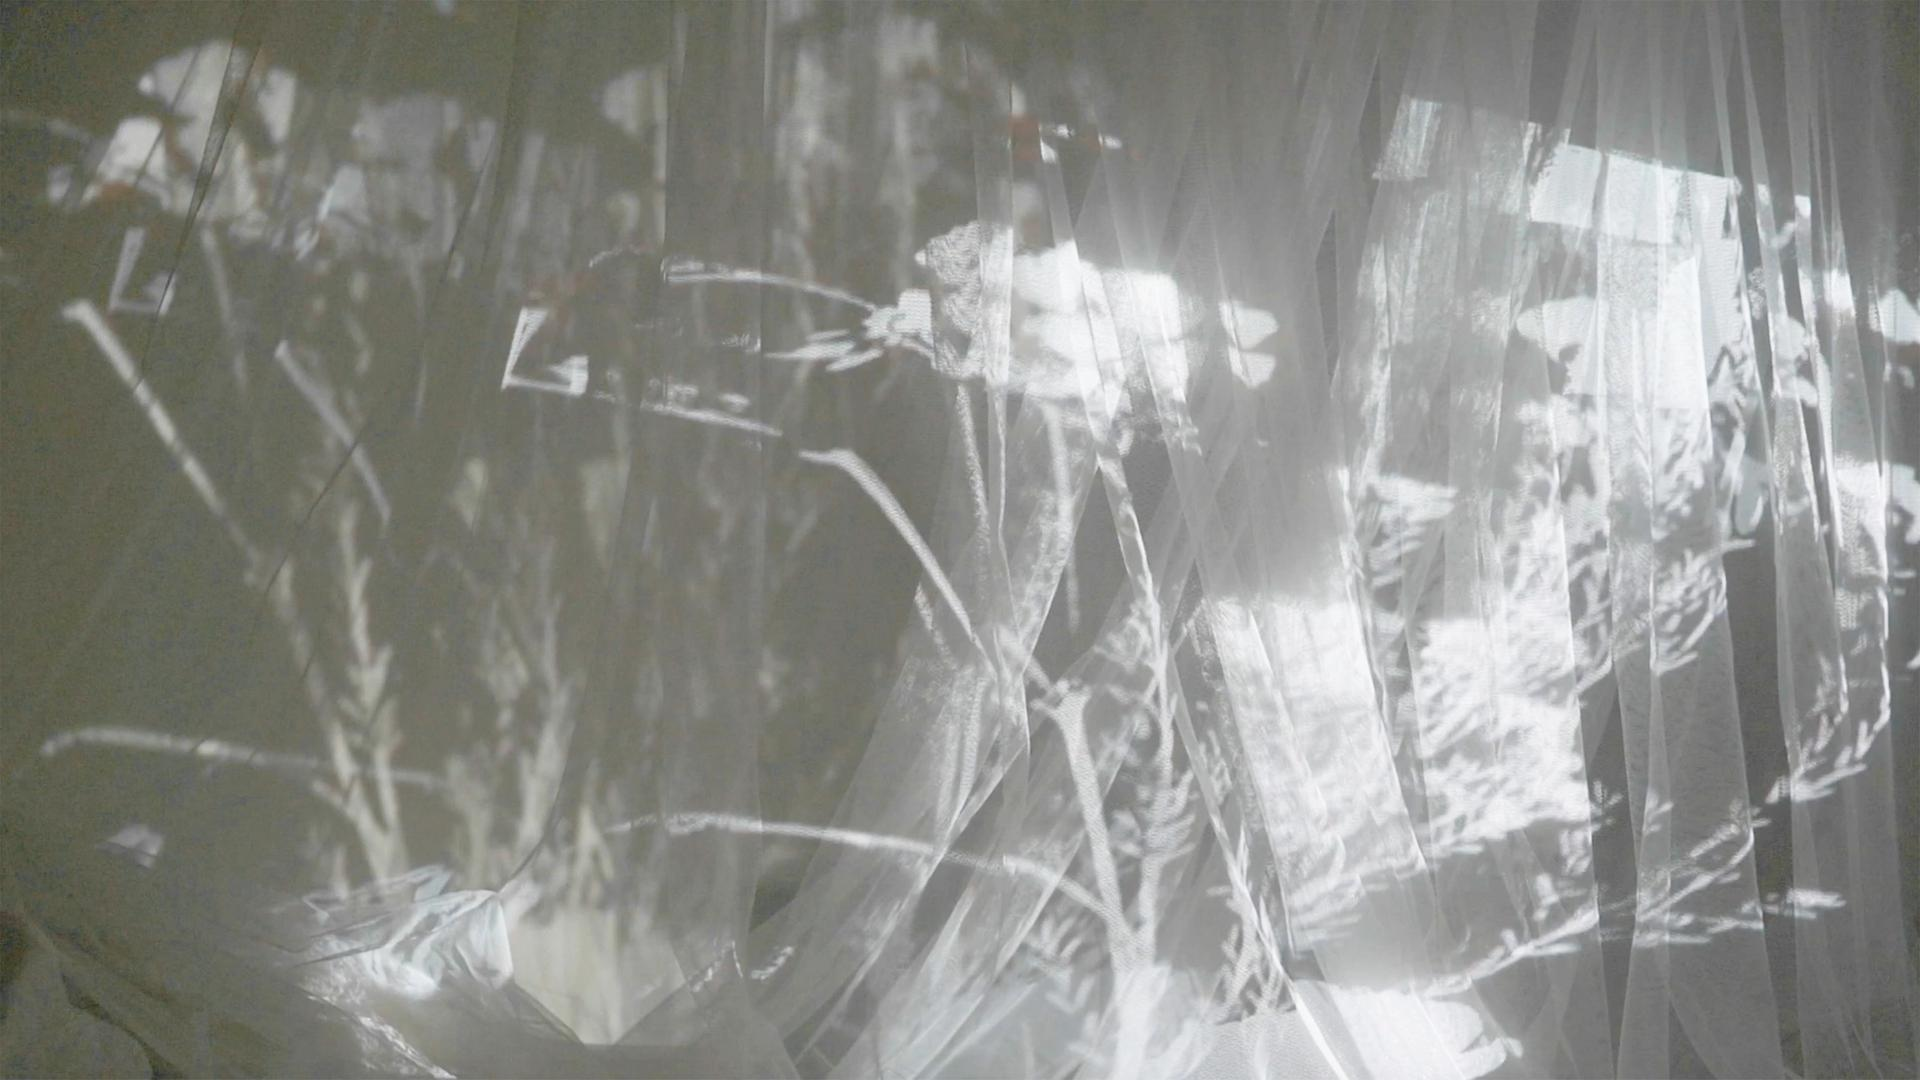 Still from constant conjunction